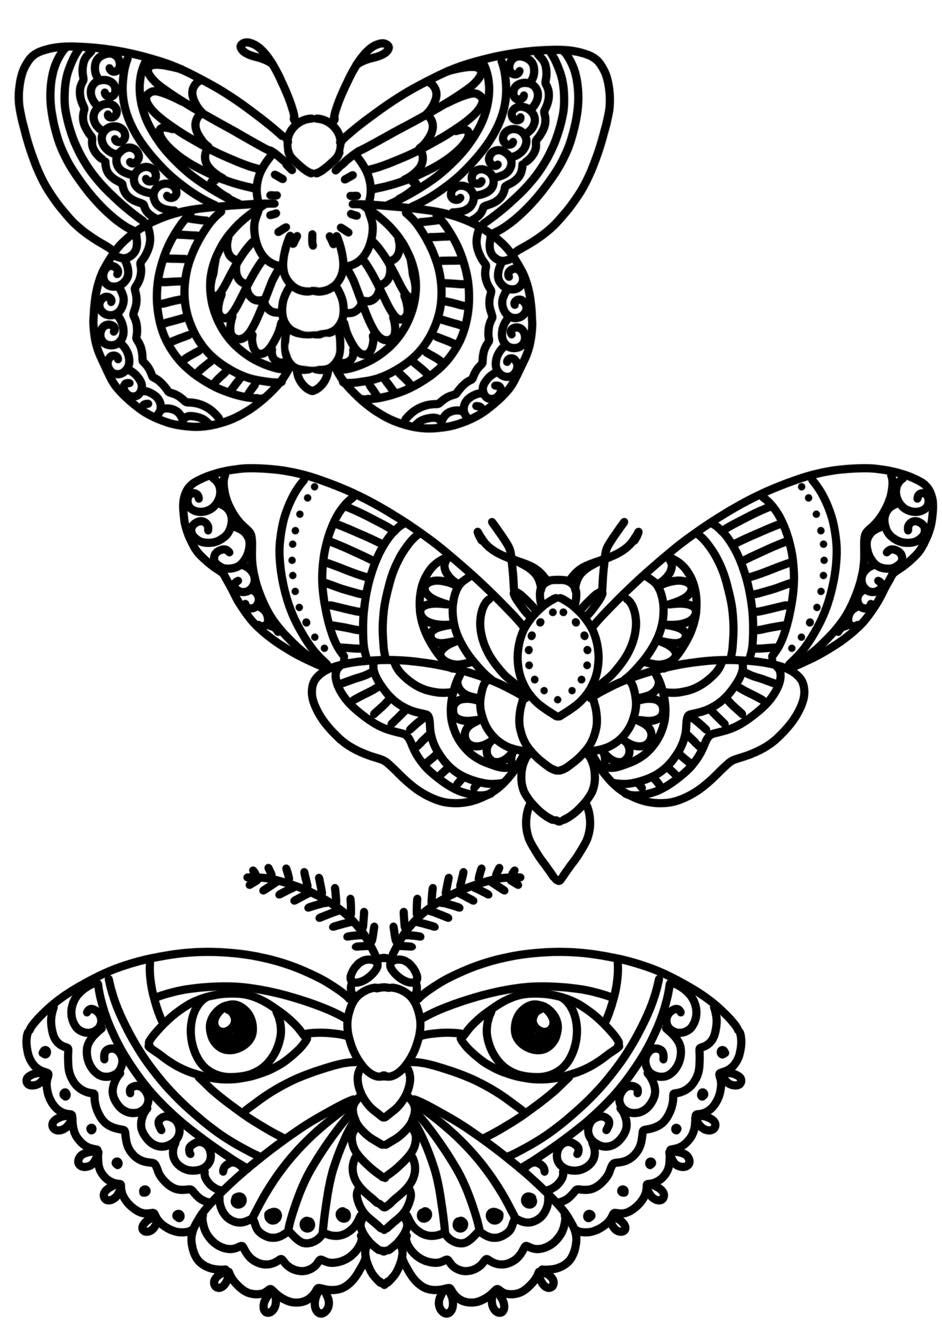 Blackwork Butterfly Bold Lines Tattoo Design Follow Me On My Blog To Join All My Tips And Tricks Ab Line Tattoos Traditional Butterfly Tattoo Tattoo Portfolio